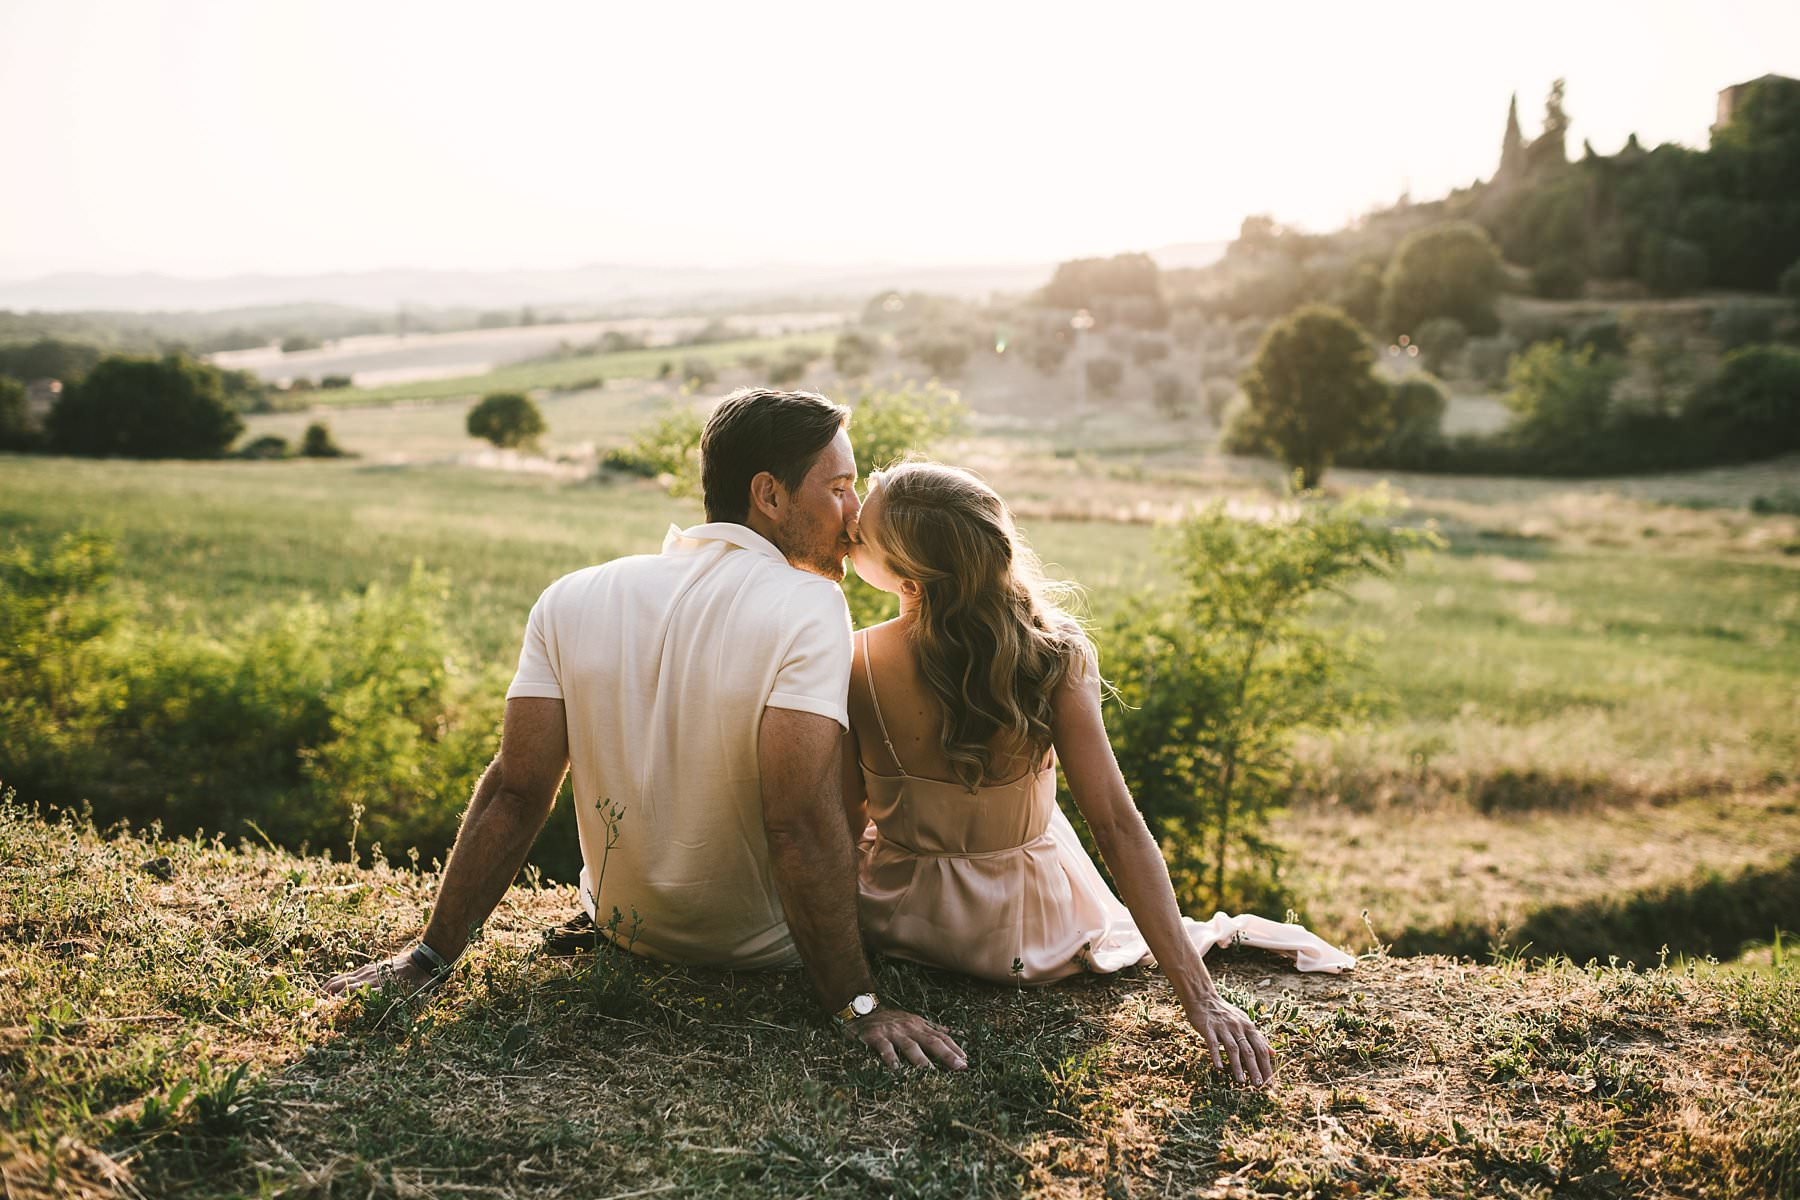 Dreamy Italy elopement with vows renewal in Val d'Orcia with rolling hills as background of your unforgettable experience